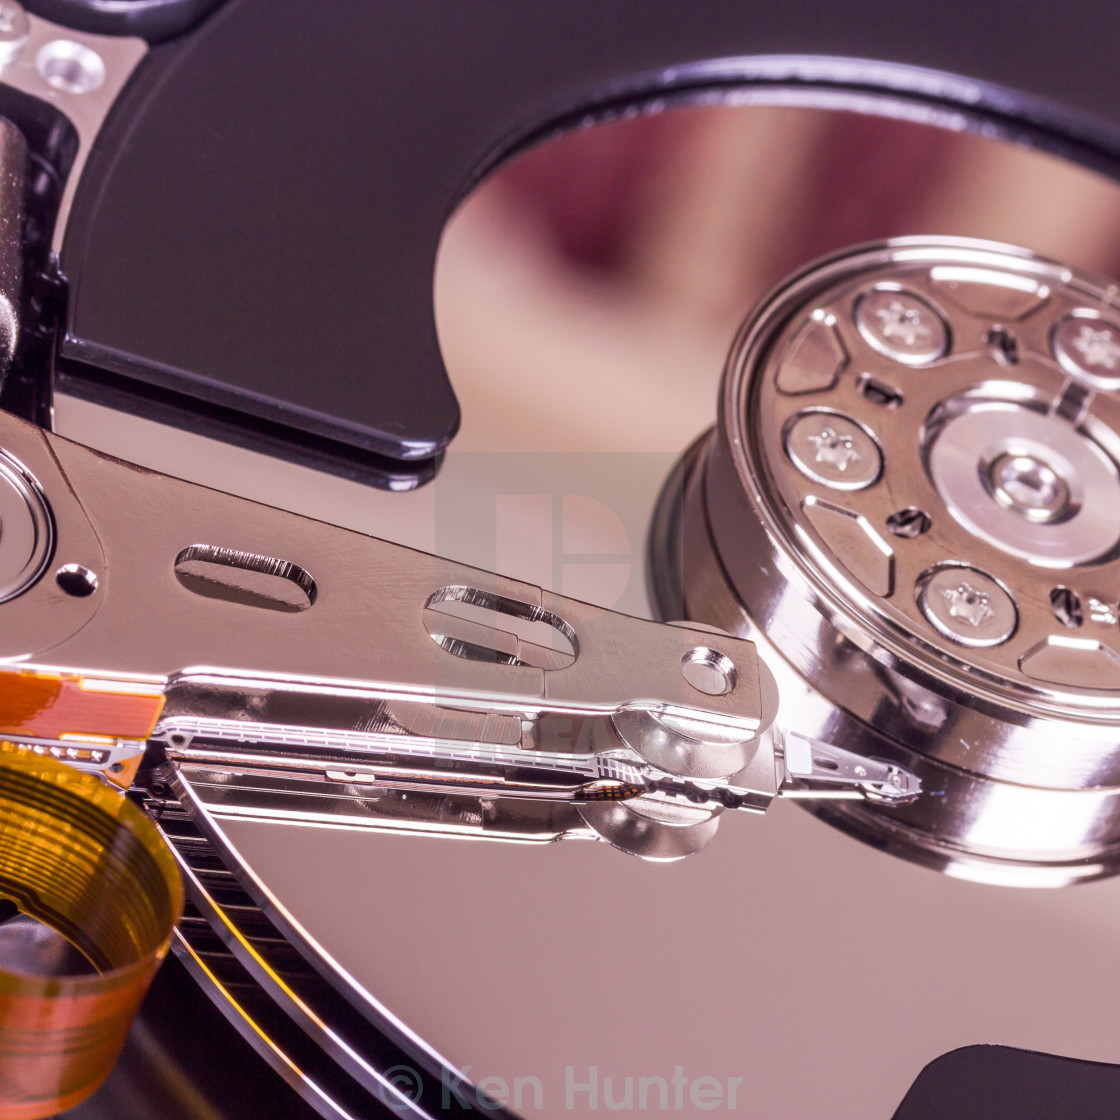 """""""Hard disk drive internal components"""" stock image"""